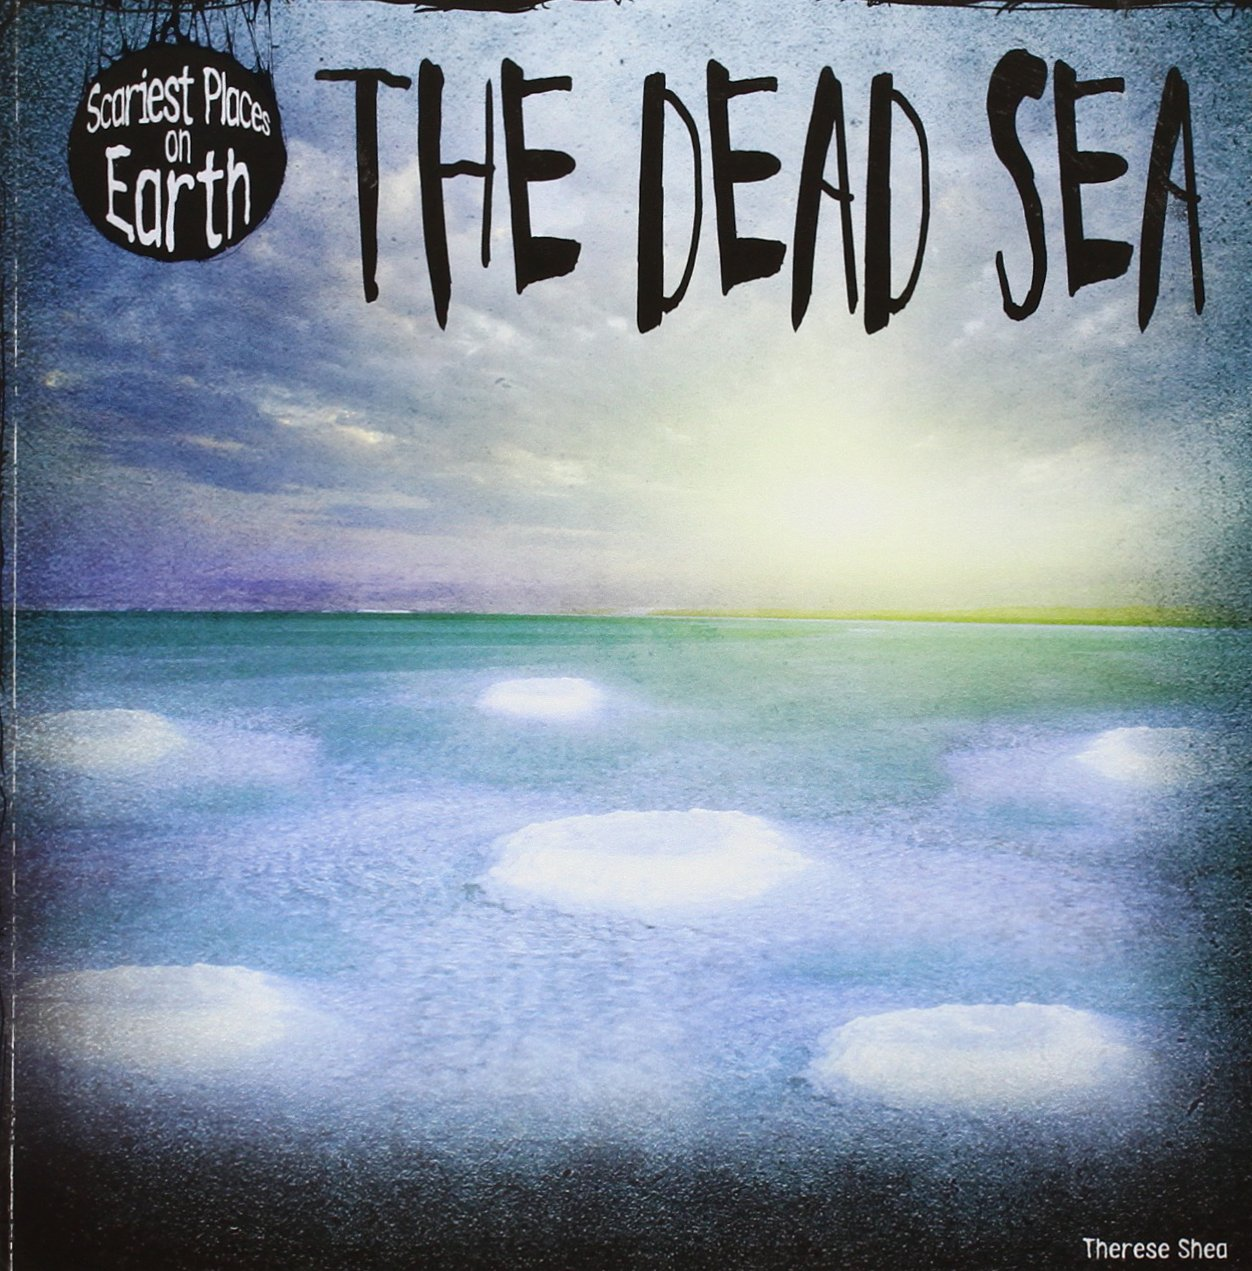 The Dead Sea (Scariest Places on Earth) Paperback – August 1, 2014 Therese Shea 1482411679 Dead Sea (Israel and Jordan) Dead Sea (Israel and Jordan).